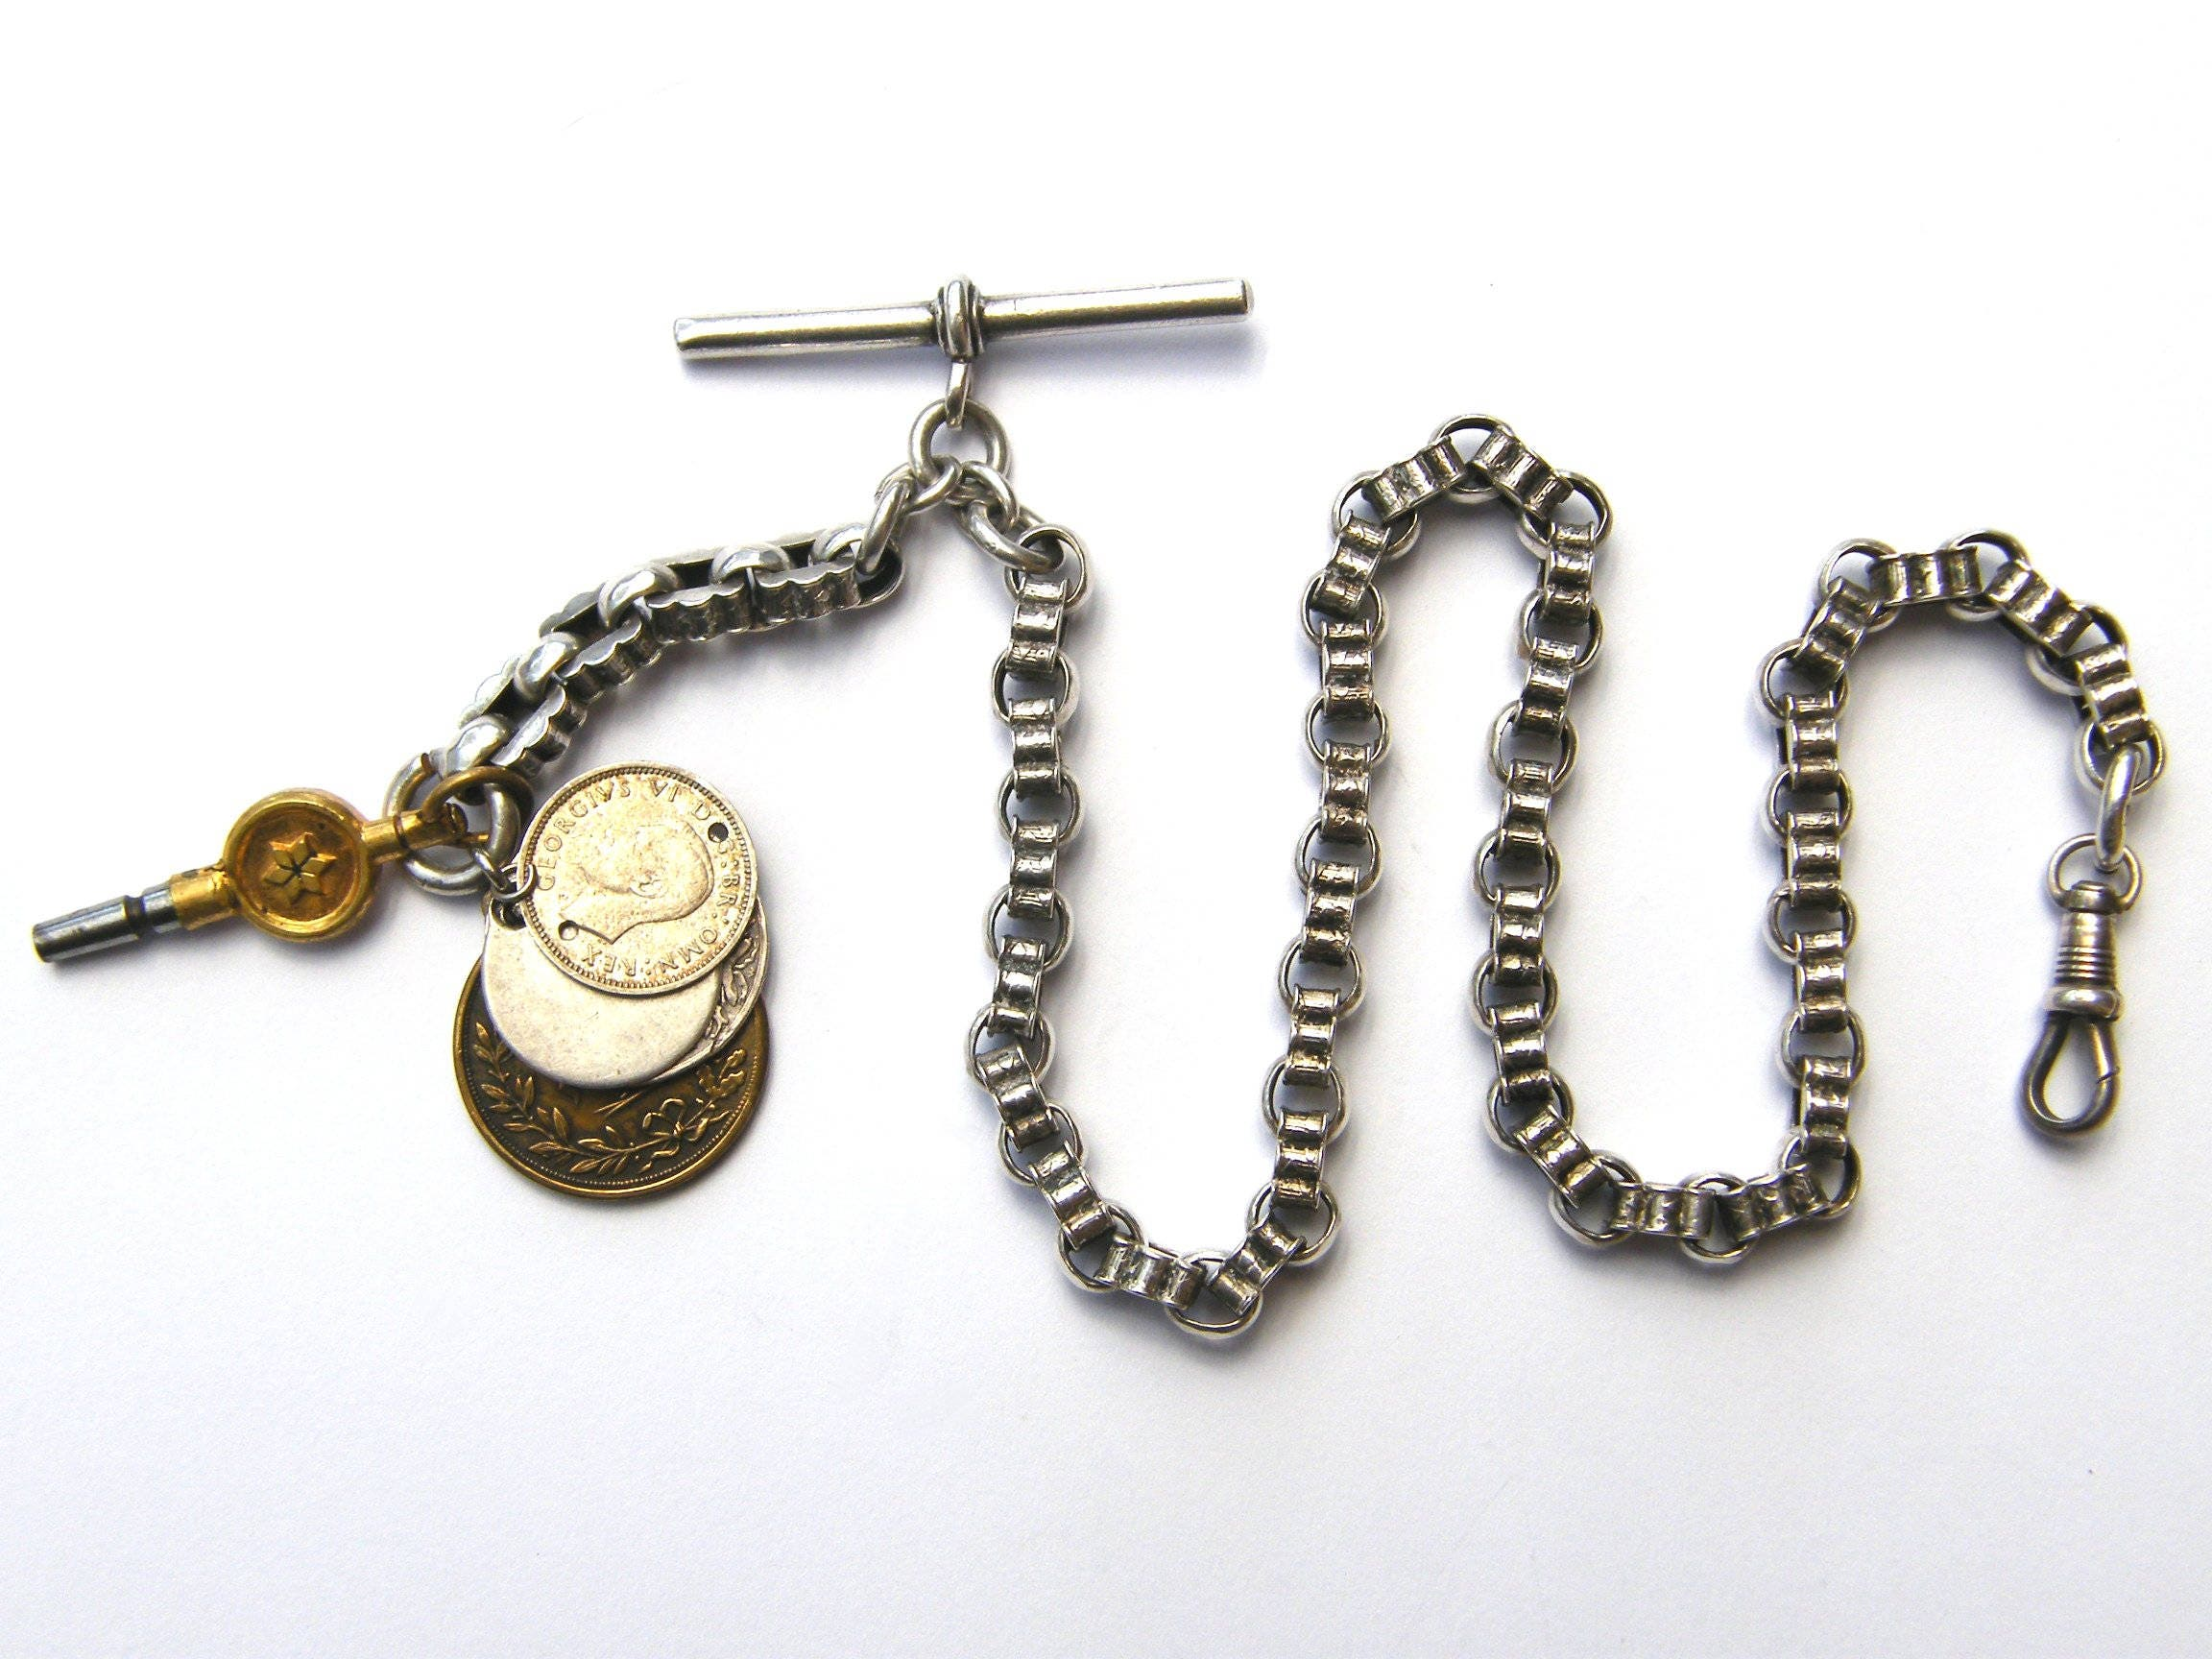 AntiqueSolid Sterling Silver Ribbed Belcher Pocket Watch Albert Chain With Coin Fobs  KeyBhamcirca 1902